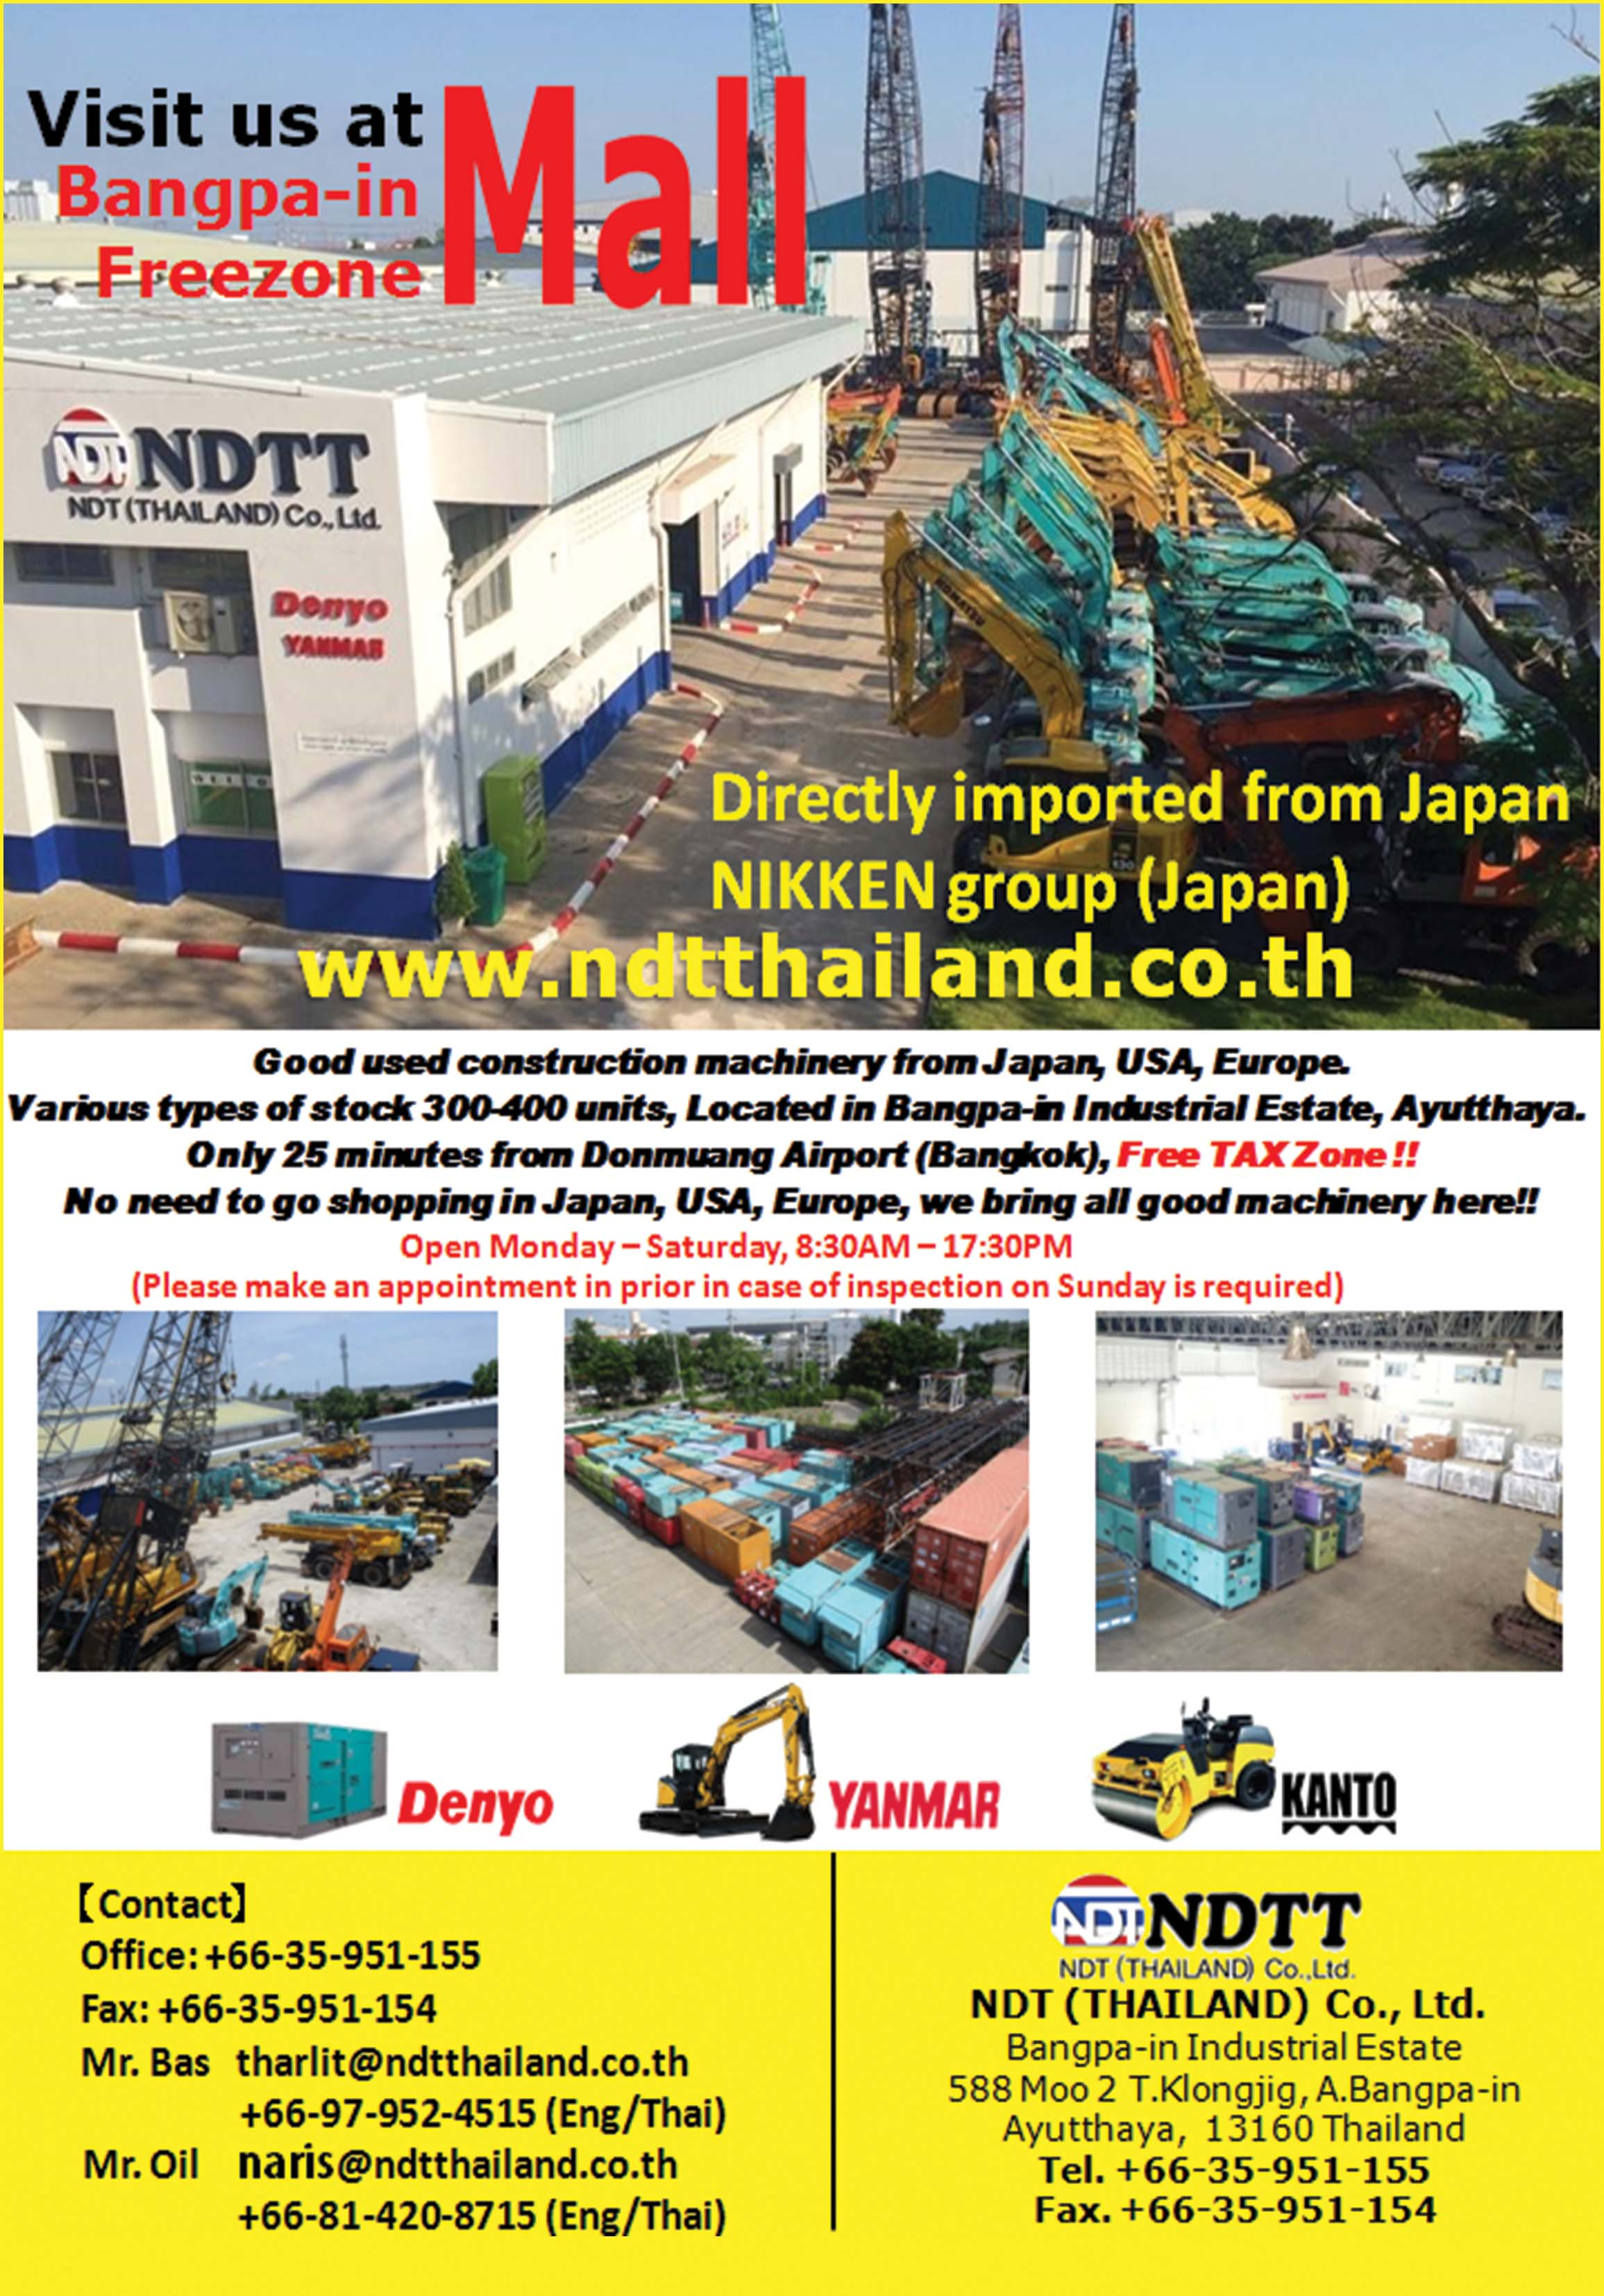 NDT (Thailand) Co., Ltd.